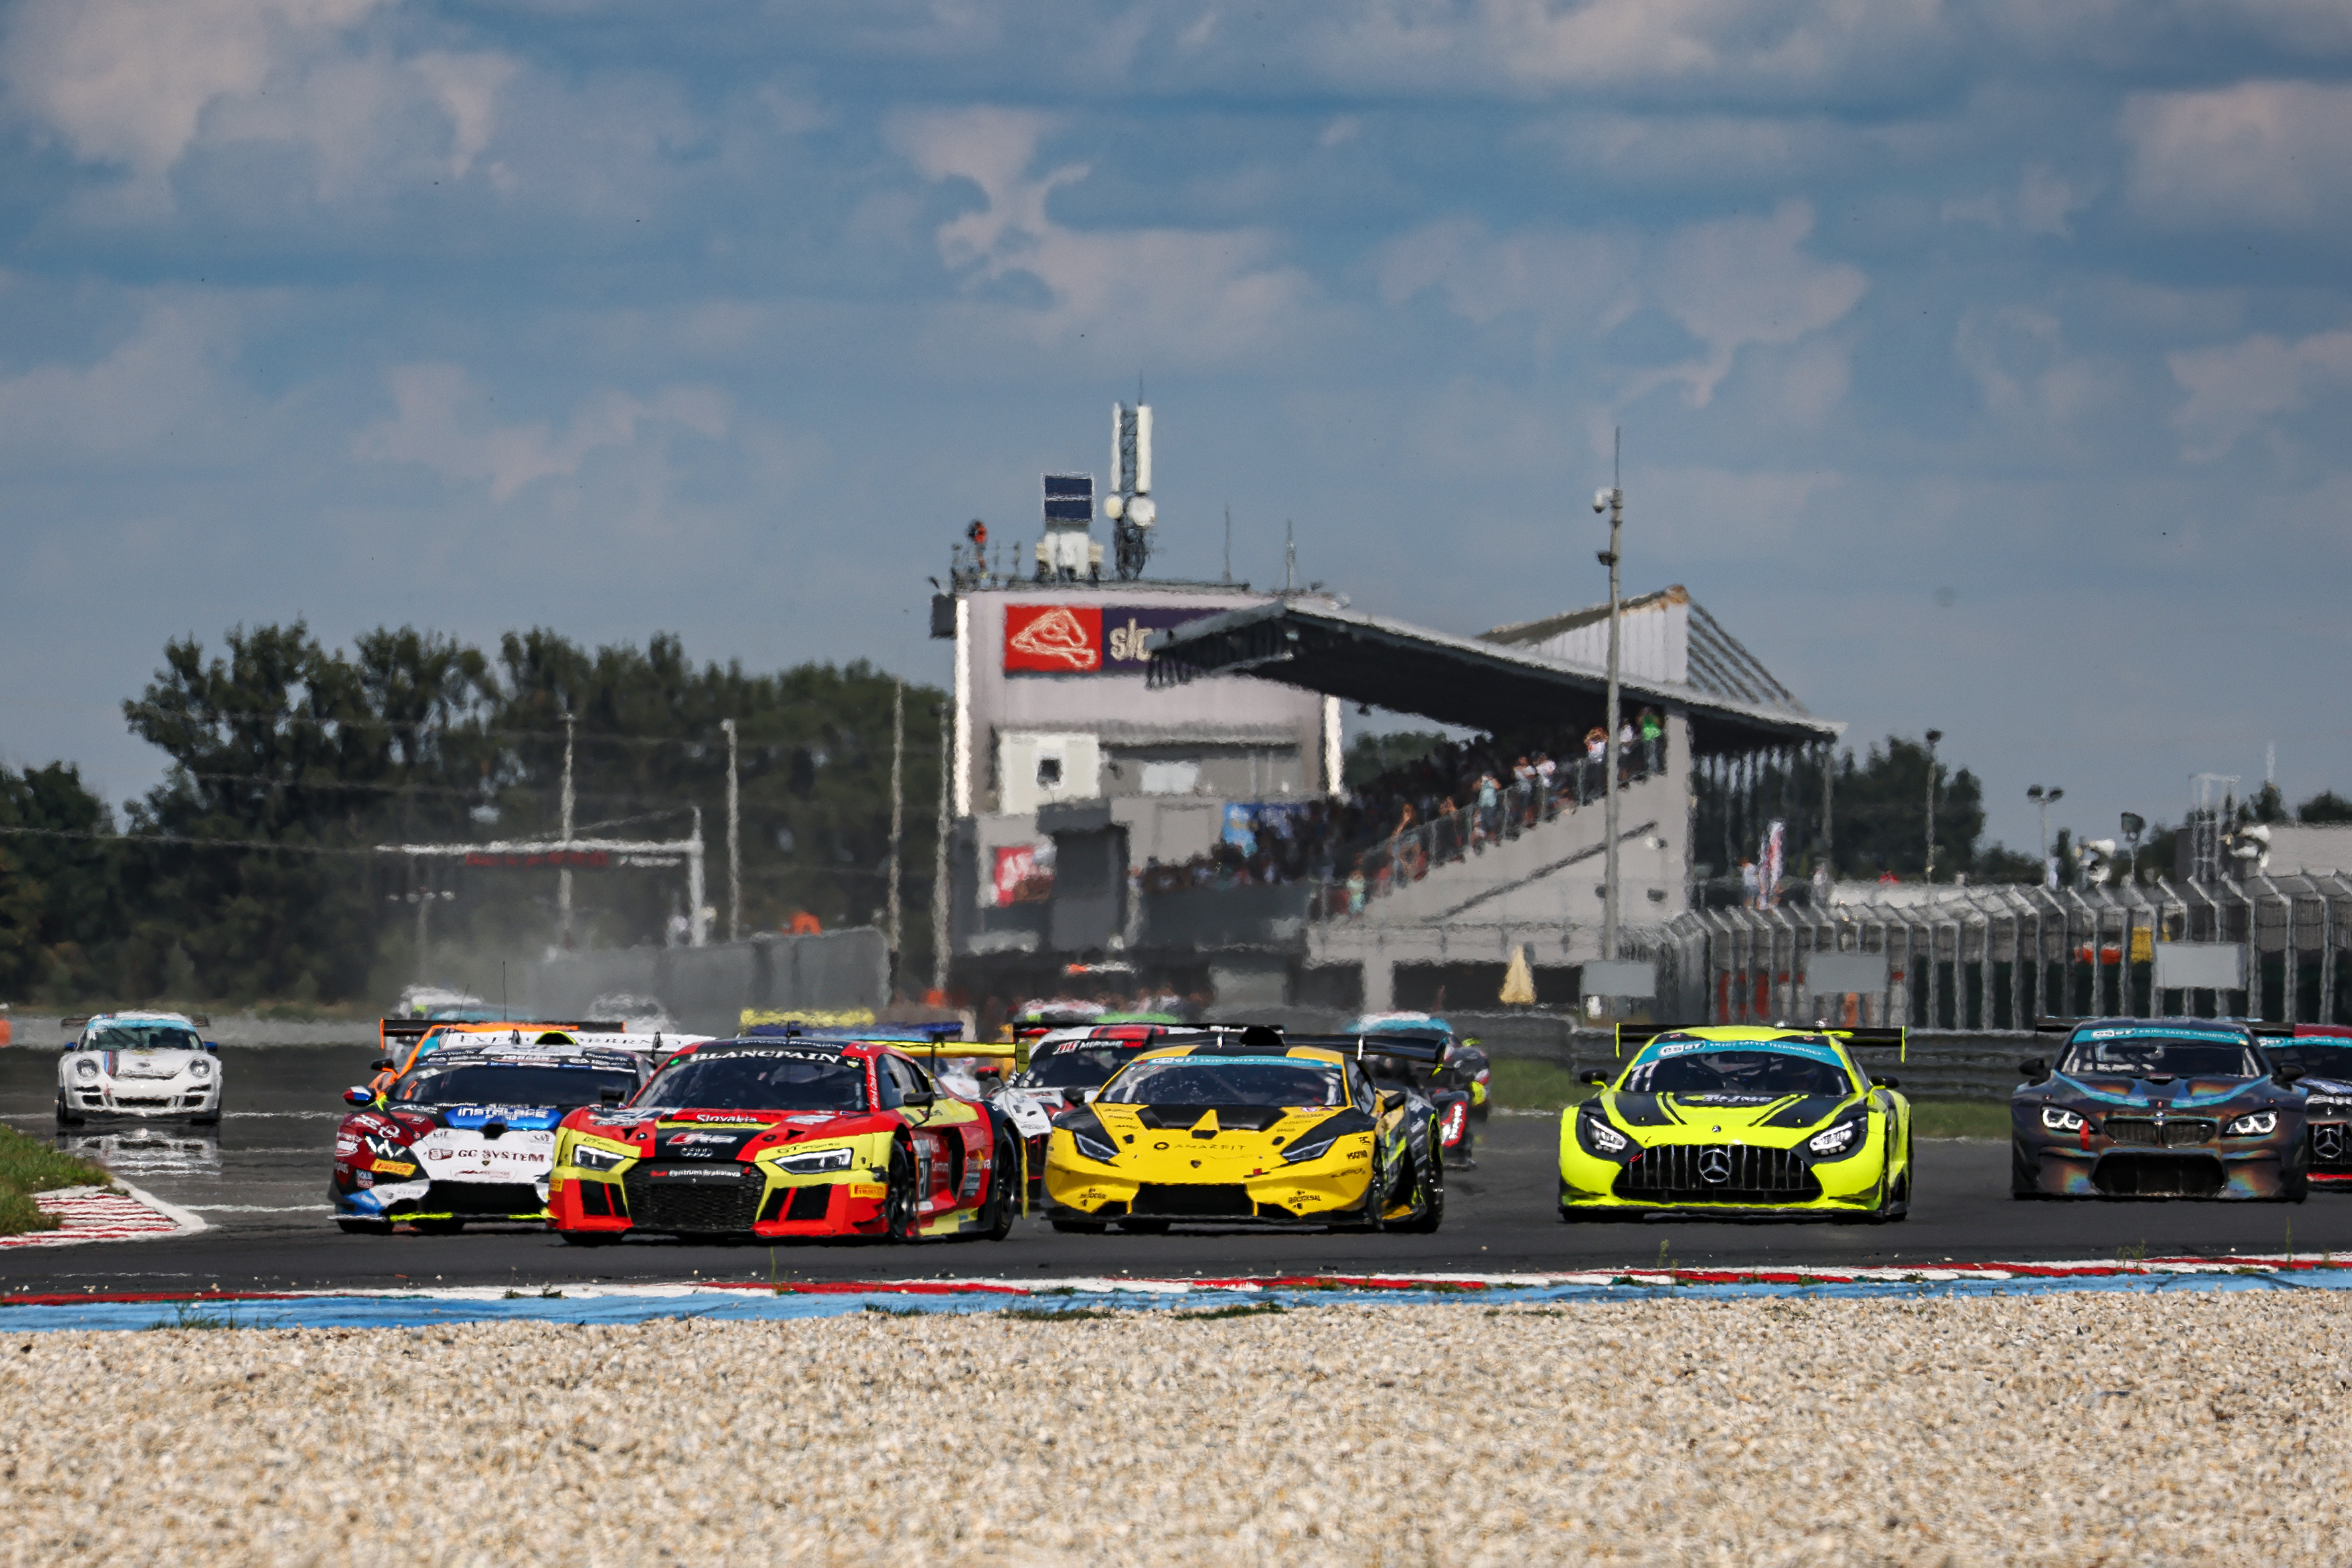 Sprint in Brno: Jedlinski closing on GT3 title, with Le Mans team taking part